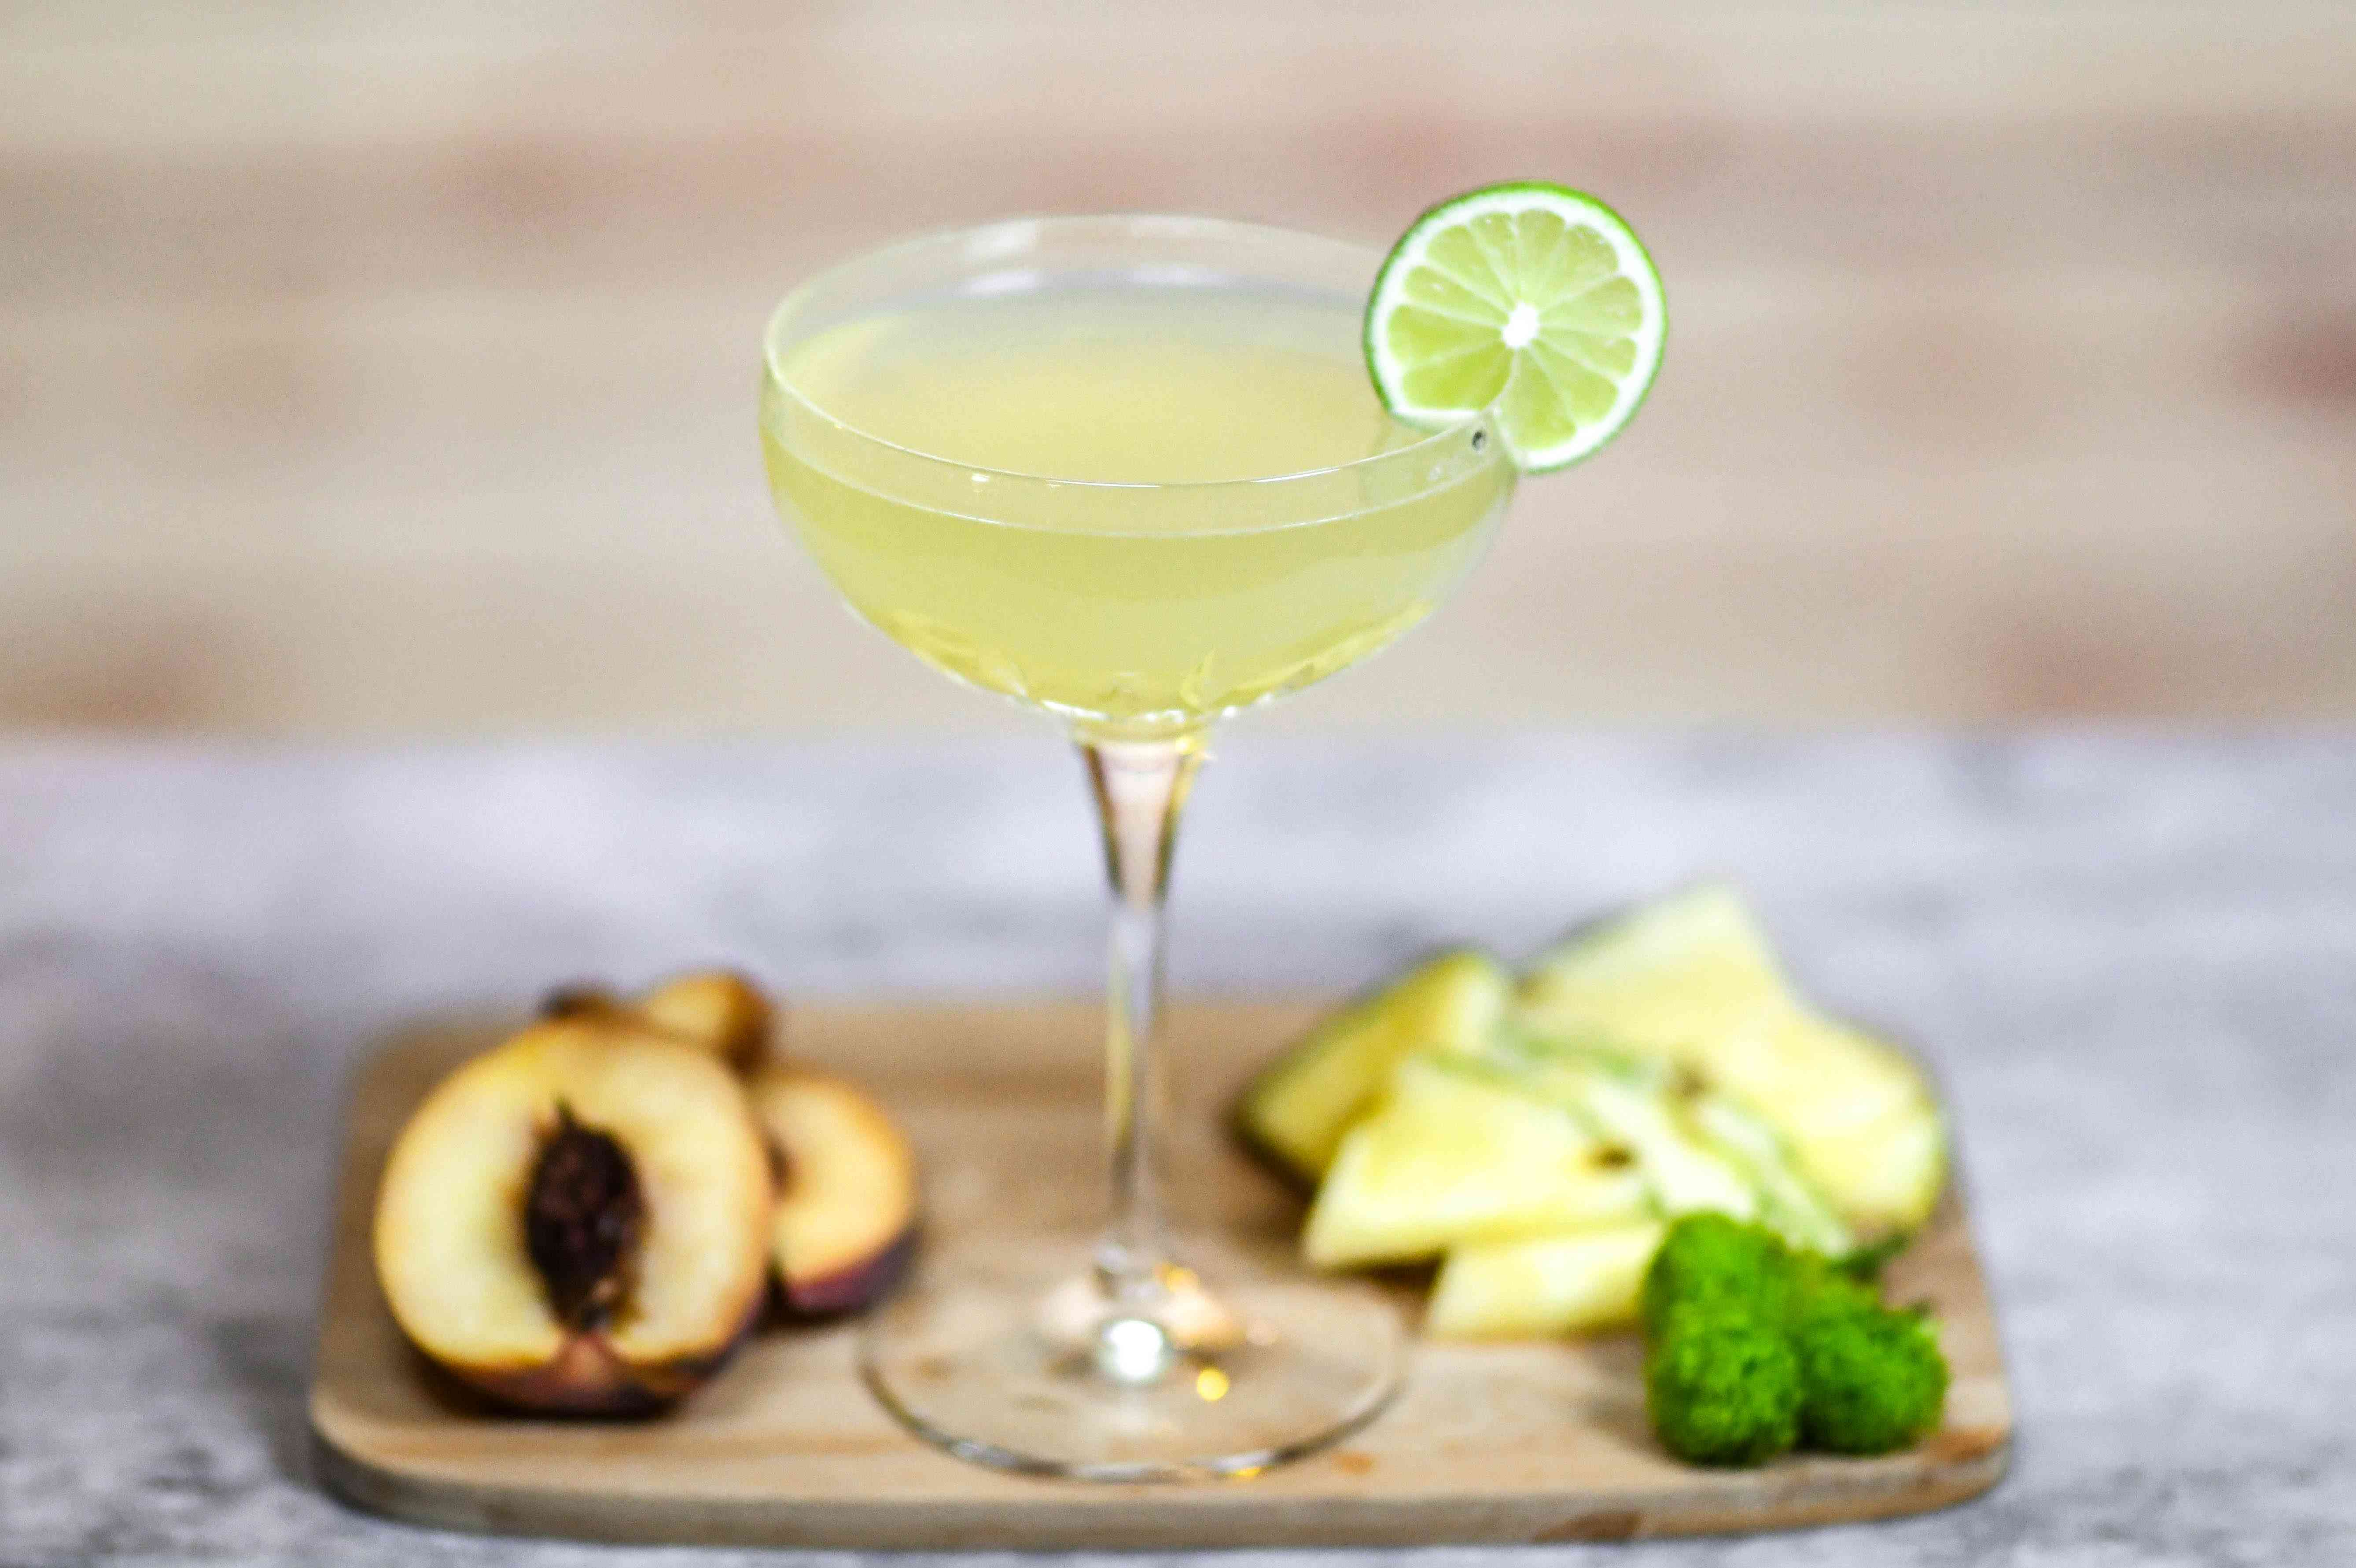 drink, cocktail, glass, alcohol, fruit, tequila, margarita, lime, peach, pineapple